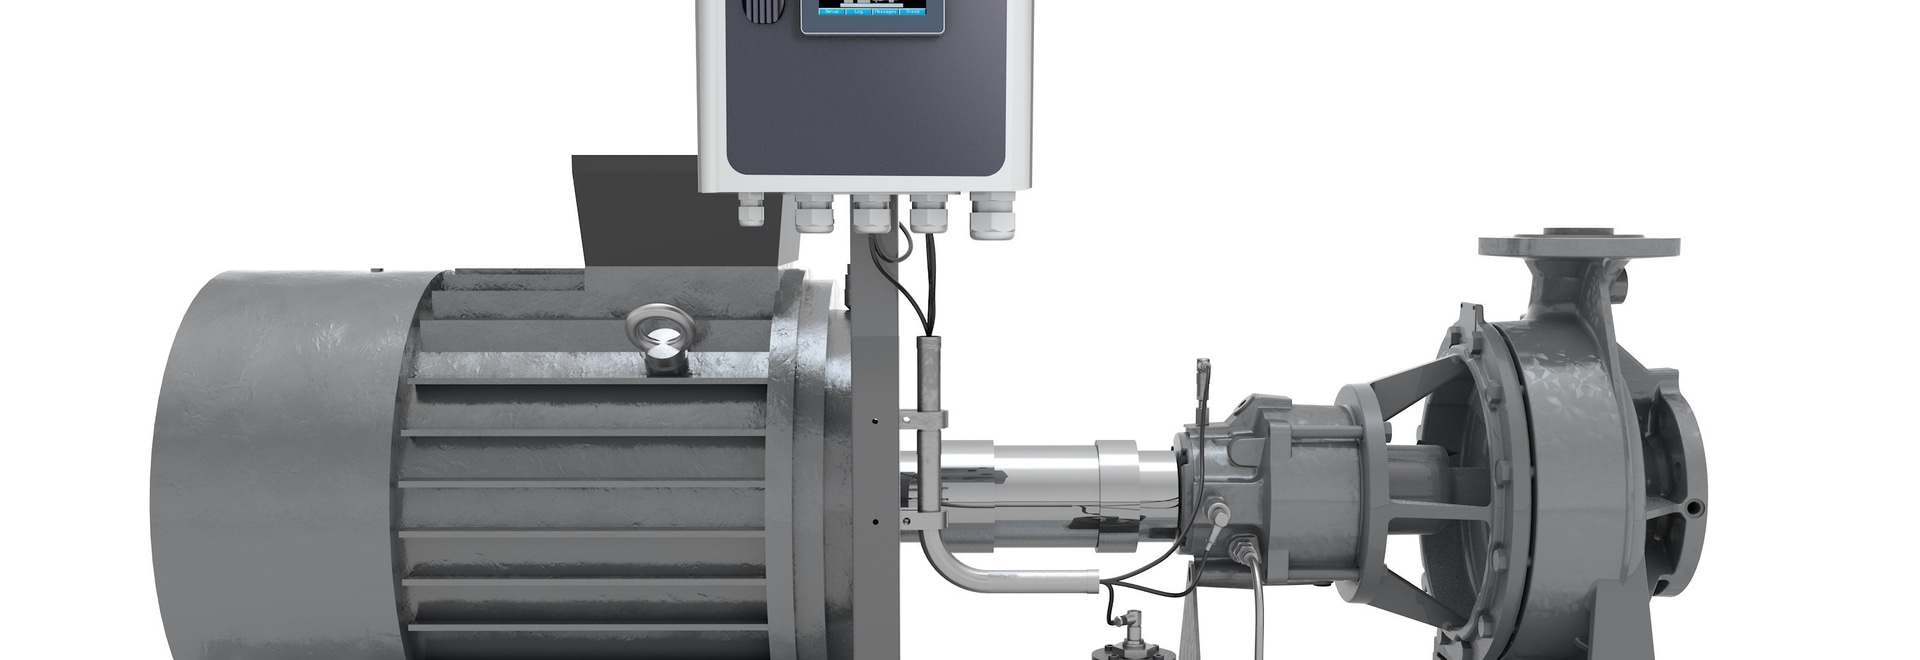 Monitoring Device Tracks Pump Systems